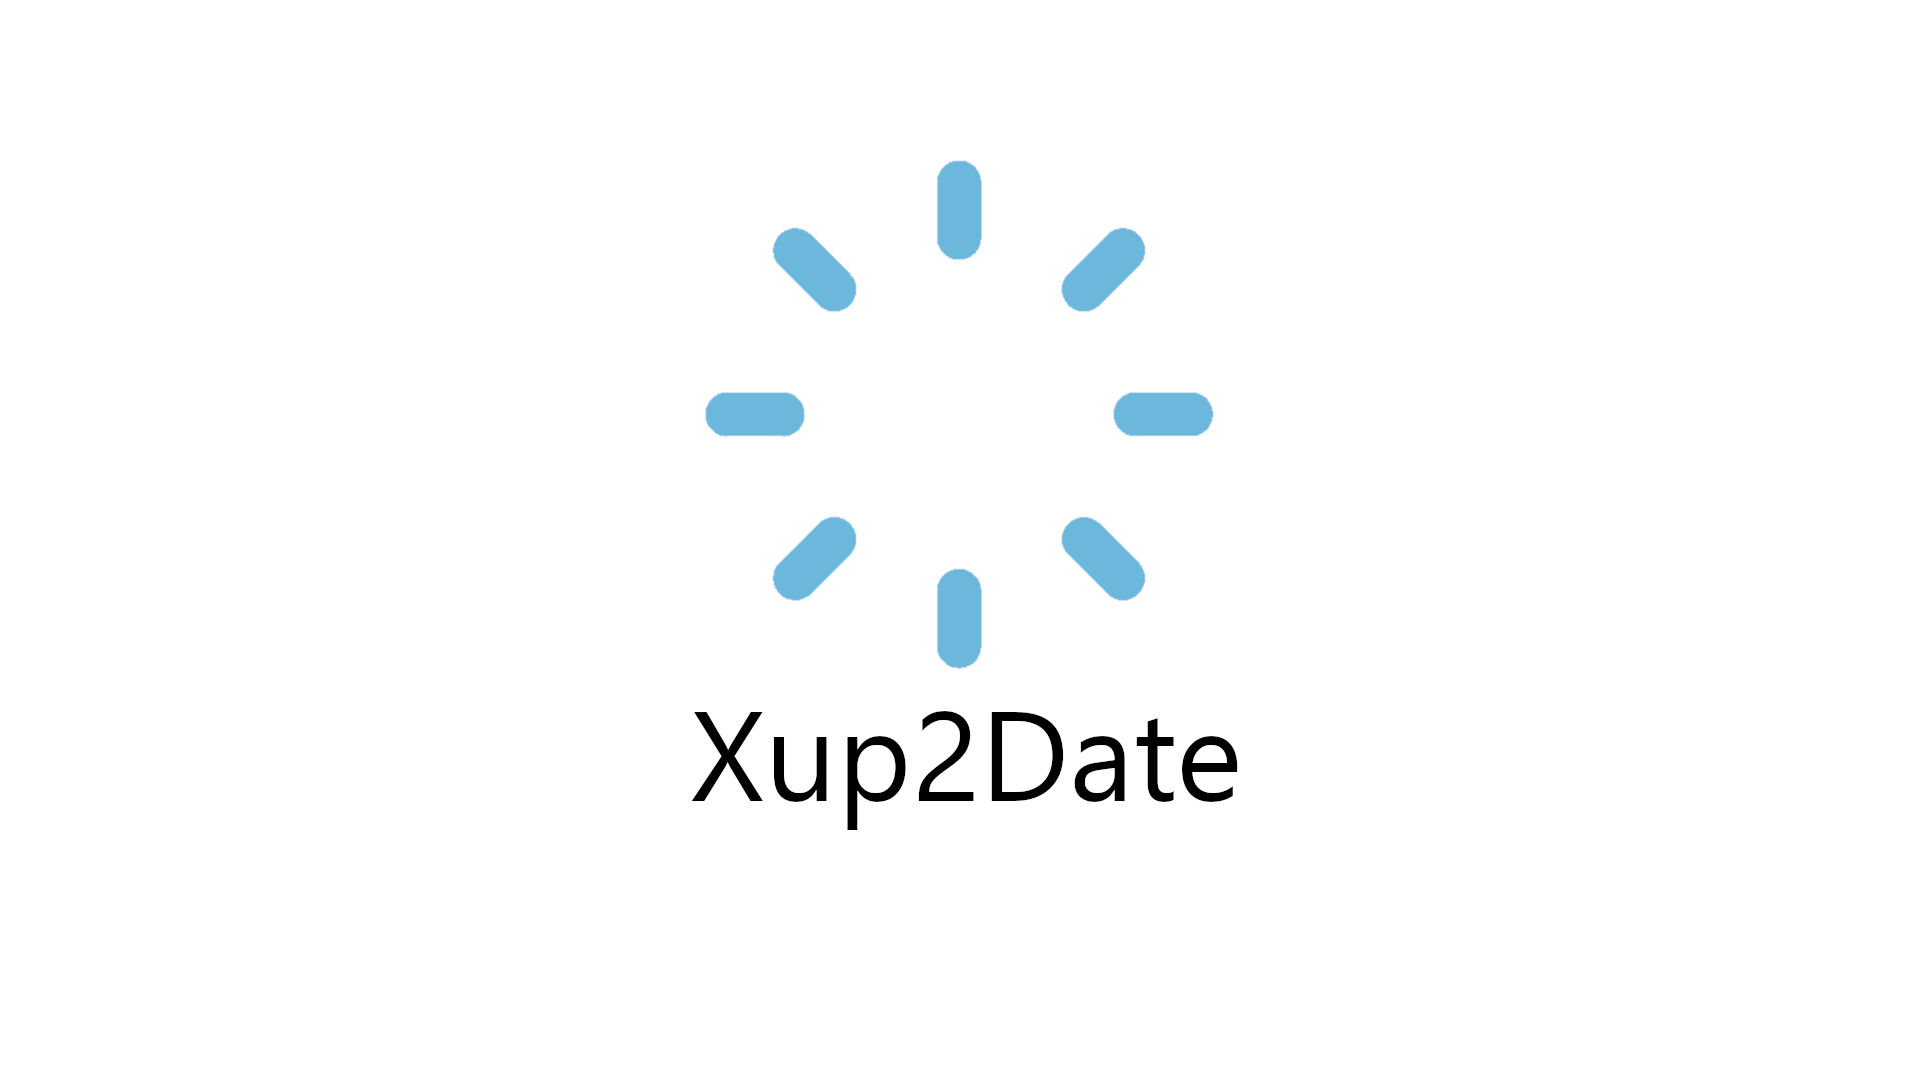 Xup2Date